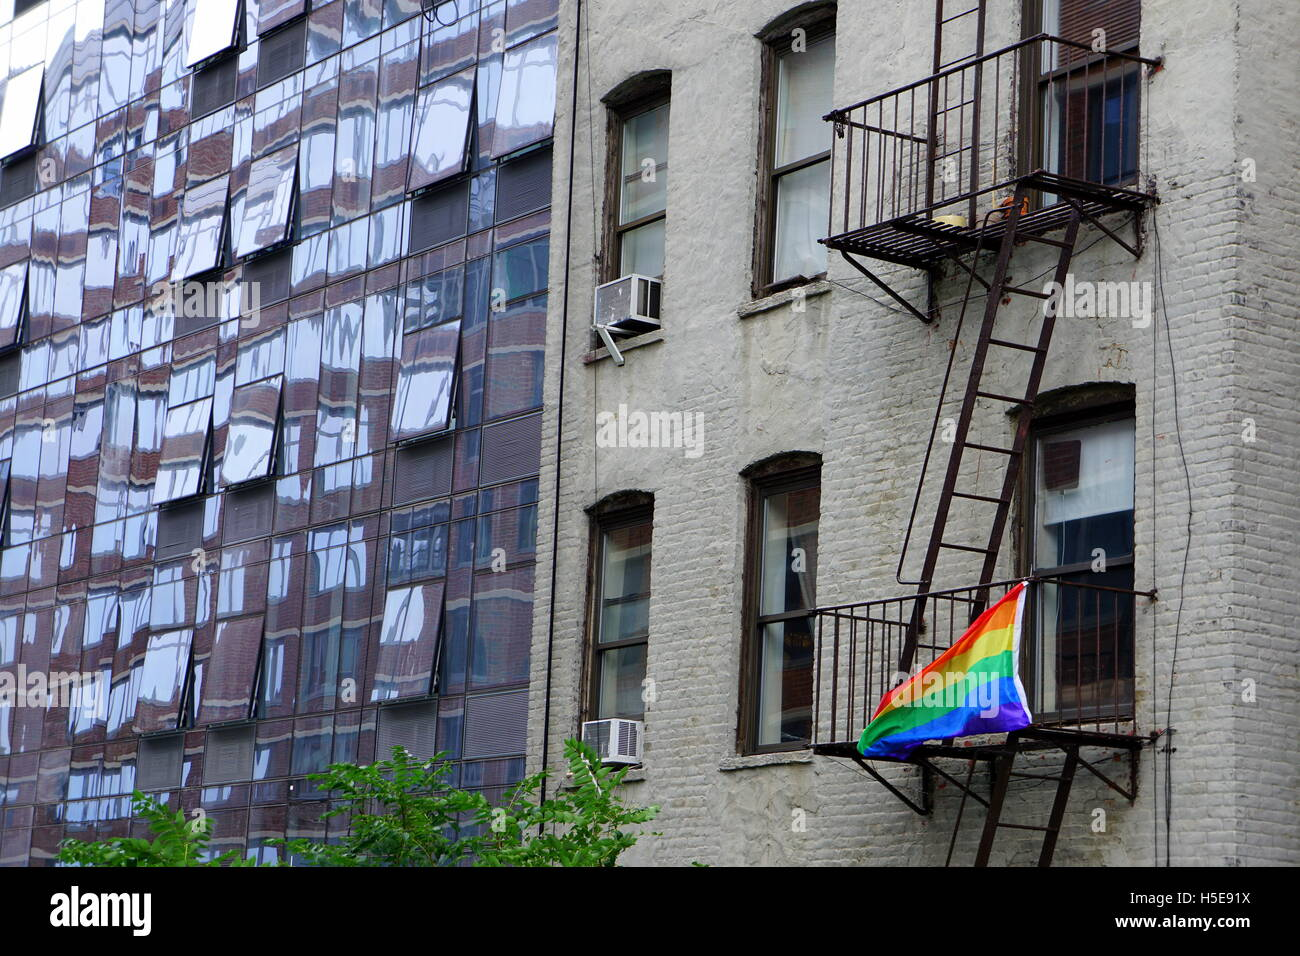 Gay pride flag (rainbow flag) hanging on the fire escape of an old apartment building, Chelsea, New York City, NY, Stock Photo